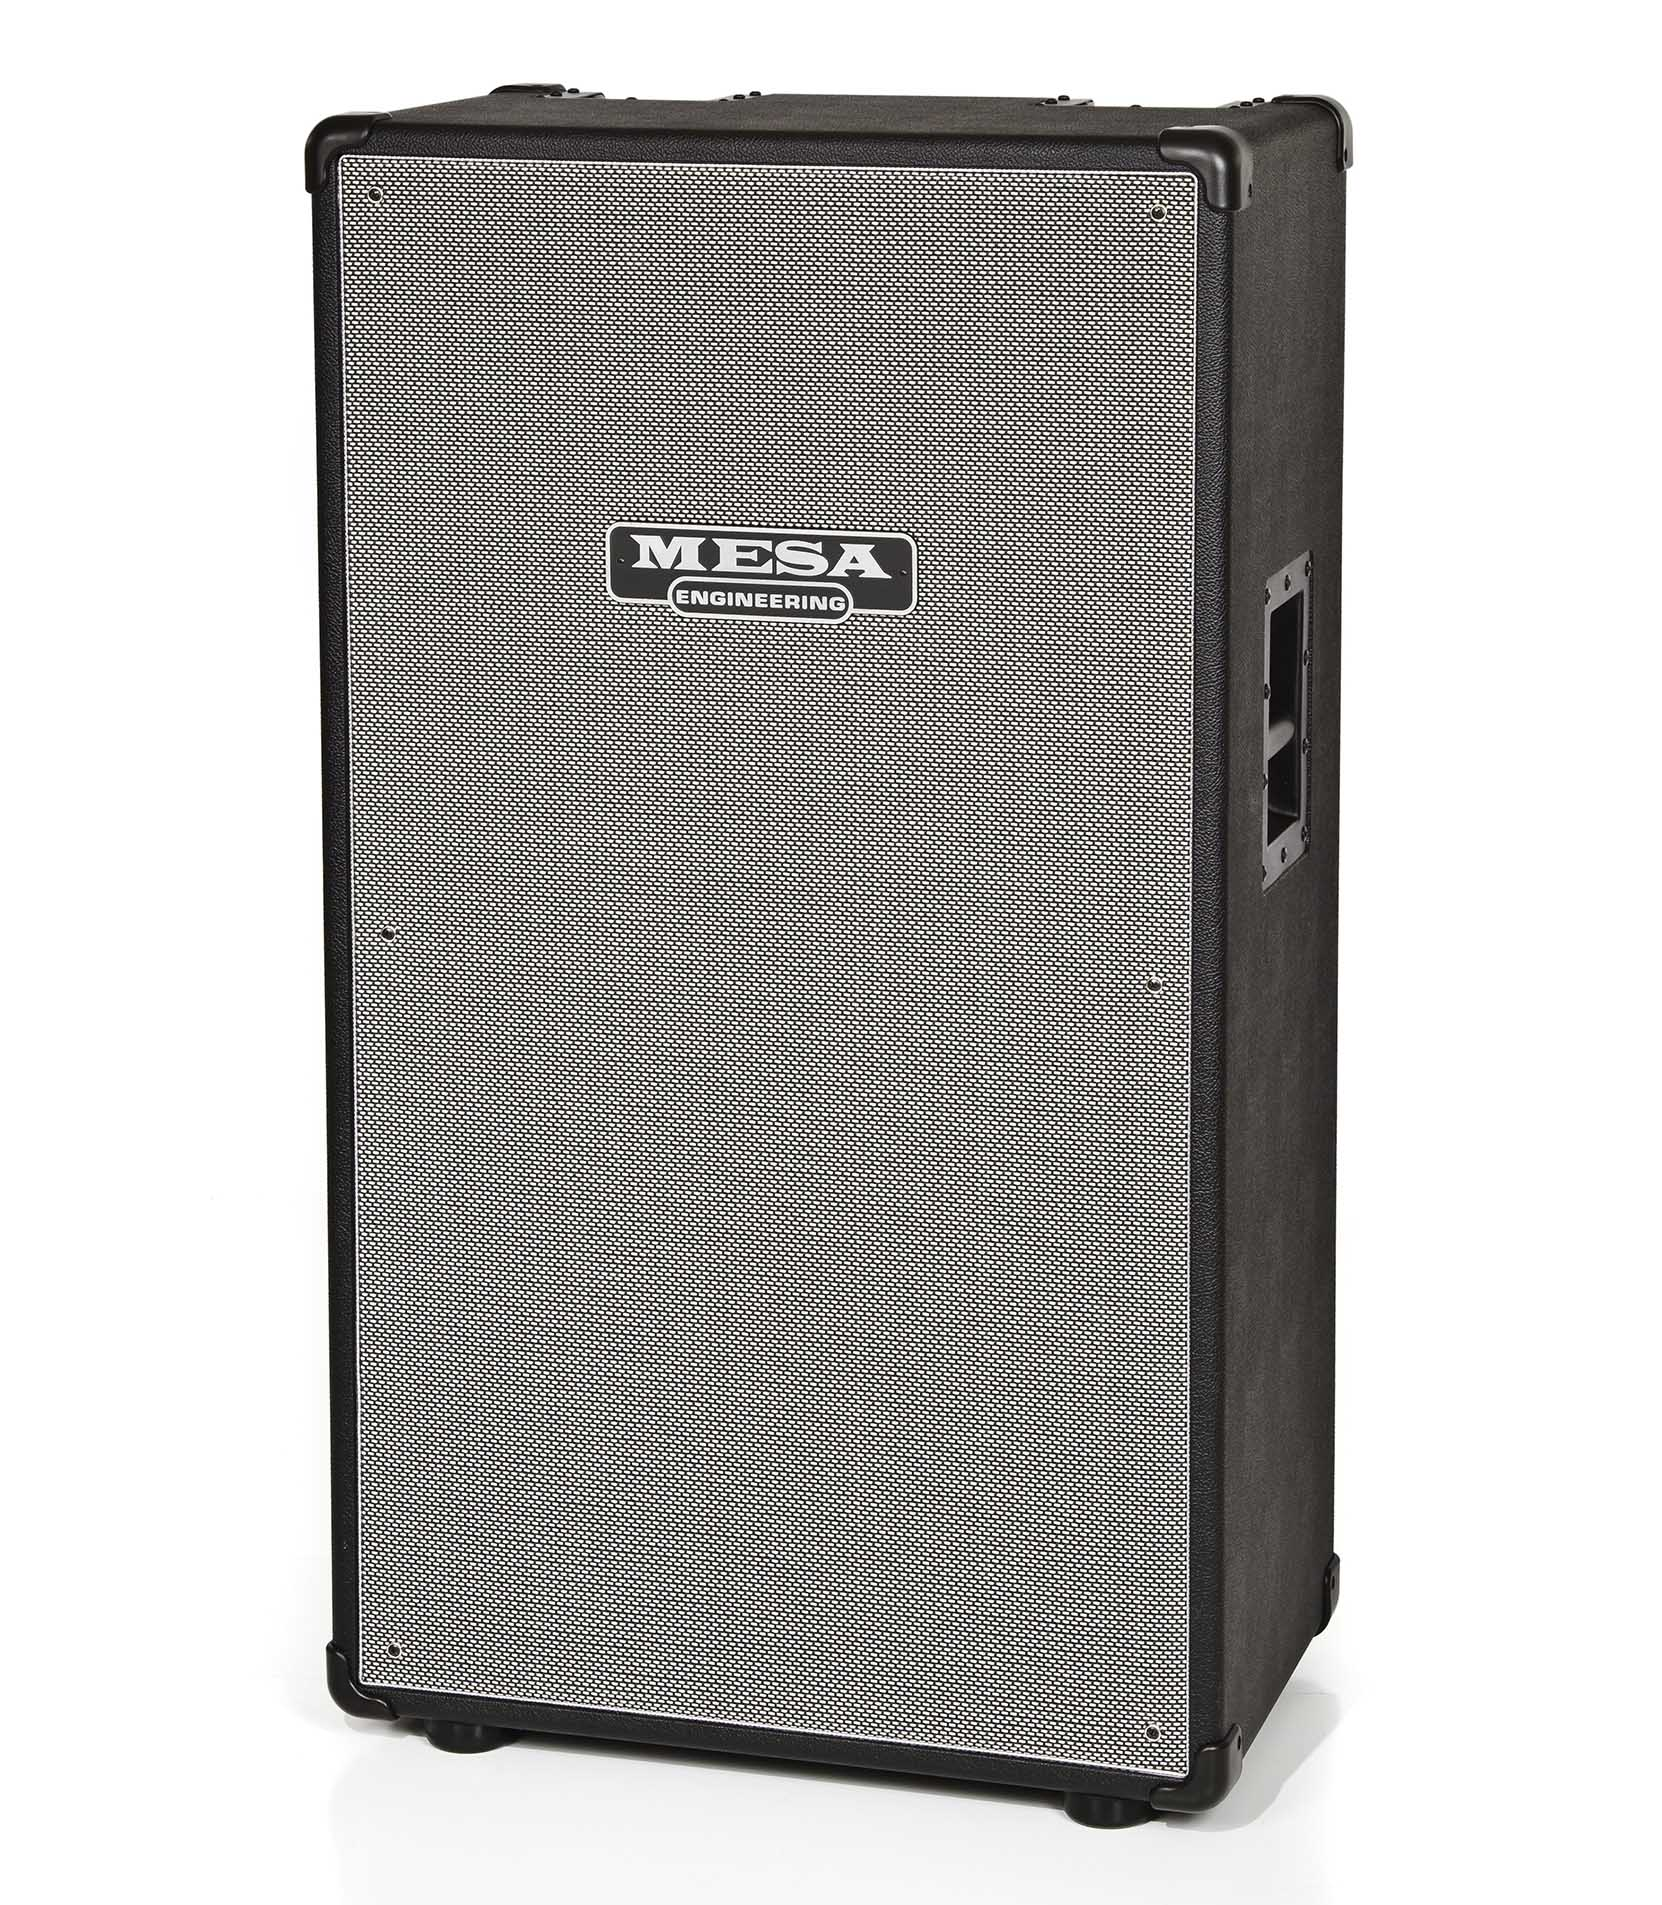 Melody House Musical Instruments Store - 8x10 Traditional PowerHouse Bass Cabinet